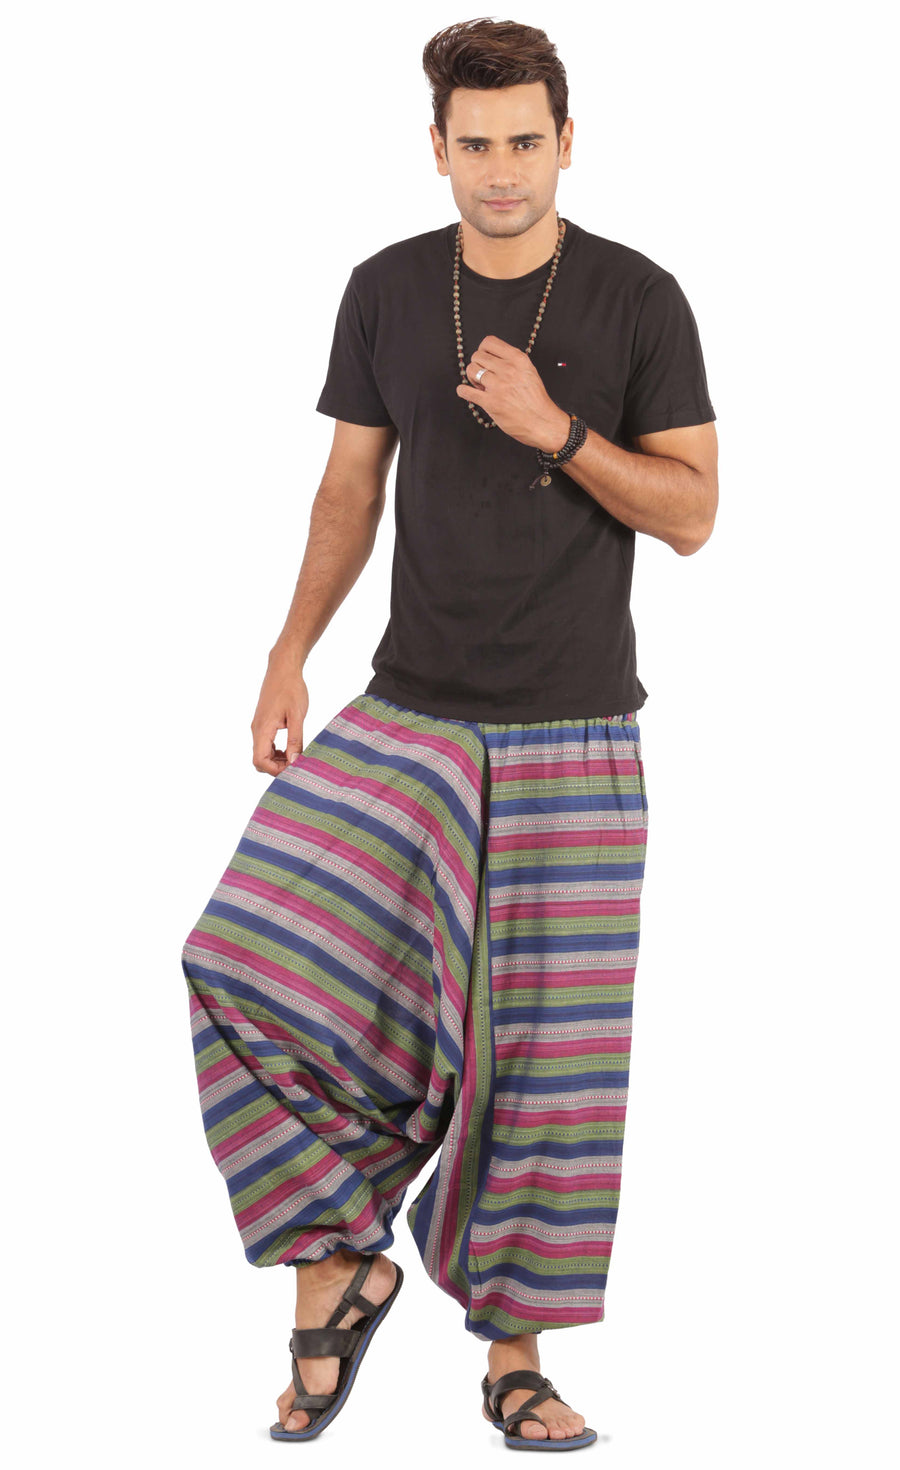 Men Harem Pants, Men's Harem Pants, green Harem Pants For Men, Wide Leg Pants, Show me Hippie Pants, Show me some Mens Harem Pants, Show me some Womens Harem Pants, What is a harem pant, Show me some baggy pants, I want to buy harem pants, cool harem pants, Wide leg harem Pants, Cheap Harem Pants, Show me best harem pants, Highly rated Harem Pants, Sarouel, Haremshose, Afgani Pants, One Size Fits All Pants,Show me  XXXL Pants , Hippie Pants, Genie Pants , Boho Pants, Genie Clothes